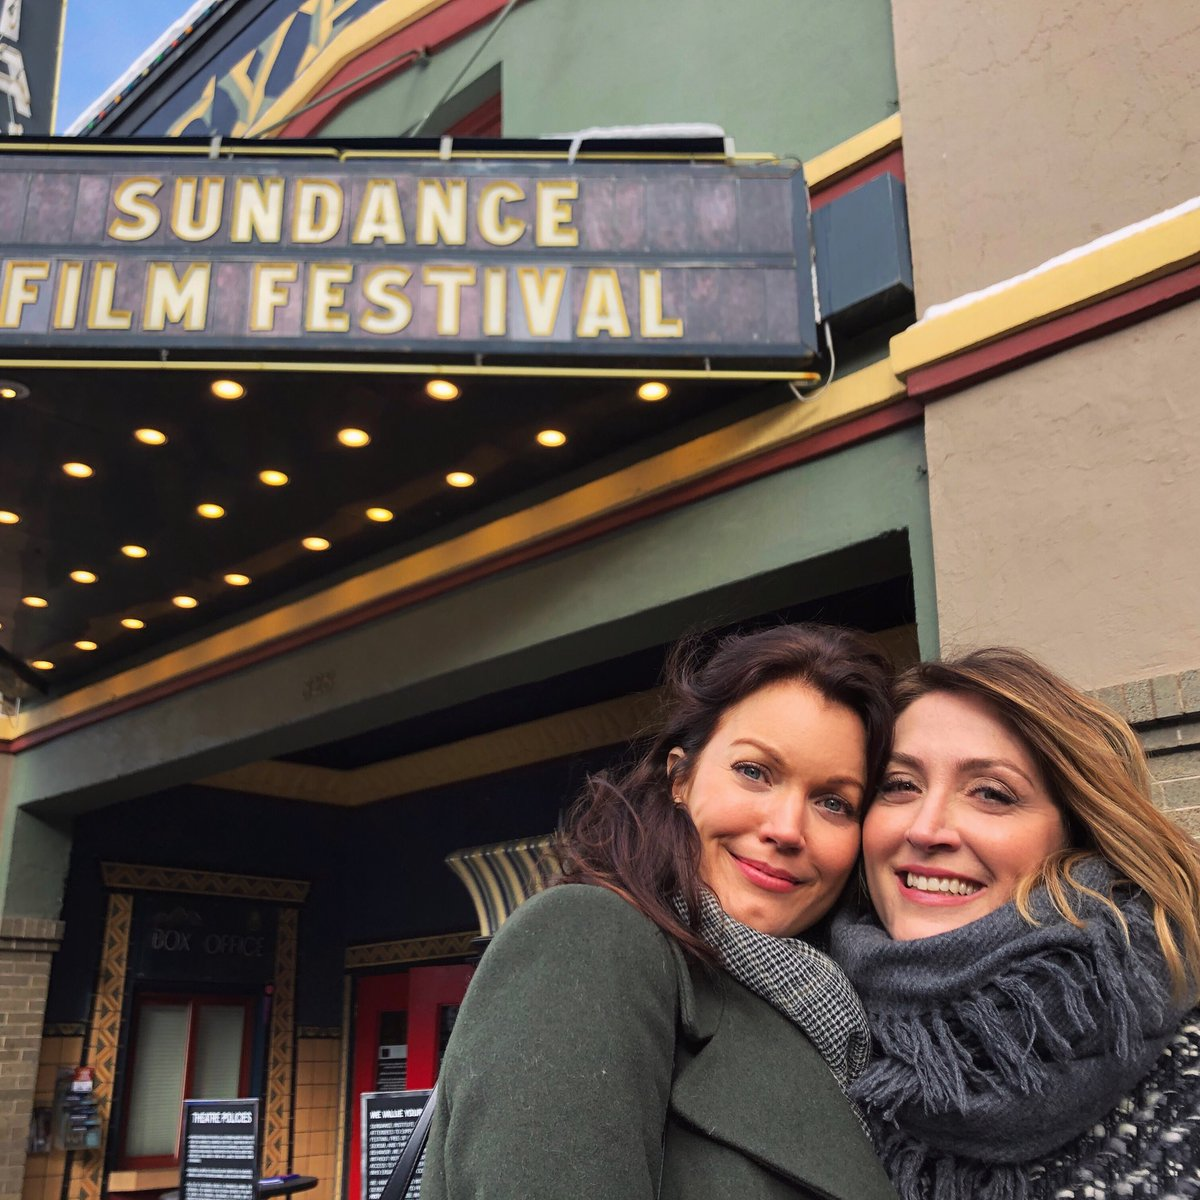 Look who I get to spend my day with: the beautiful @thesashaalexander ! We're in #ParkCity promoting our movie @BernardAndHuey at #Slamdance! Check it out Tuesday at 5p or Thursday at 5:30p! Hope you guys are having a great day too!! ❤️❄️💋🎬🥂🎉 📸 by @EdoardoPonti 🤓